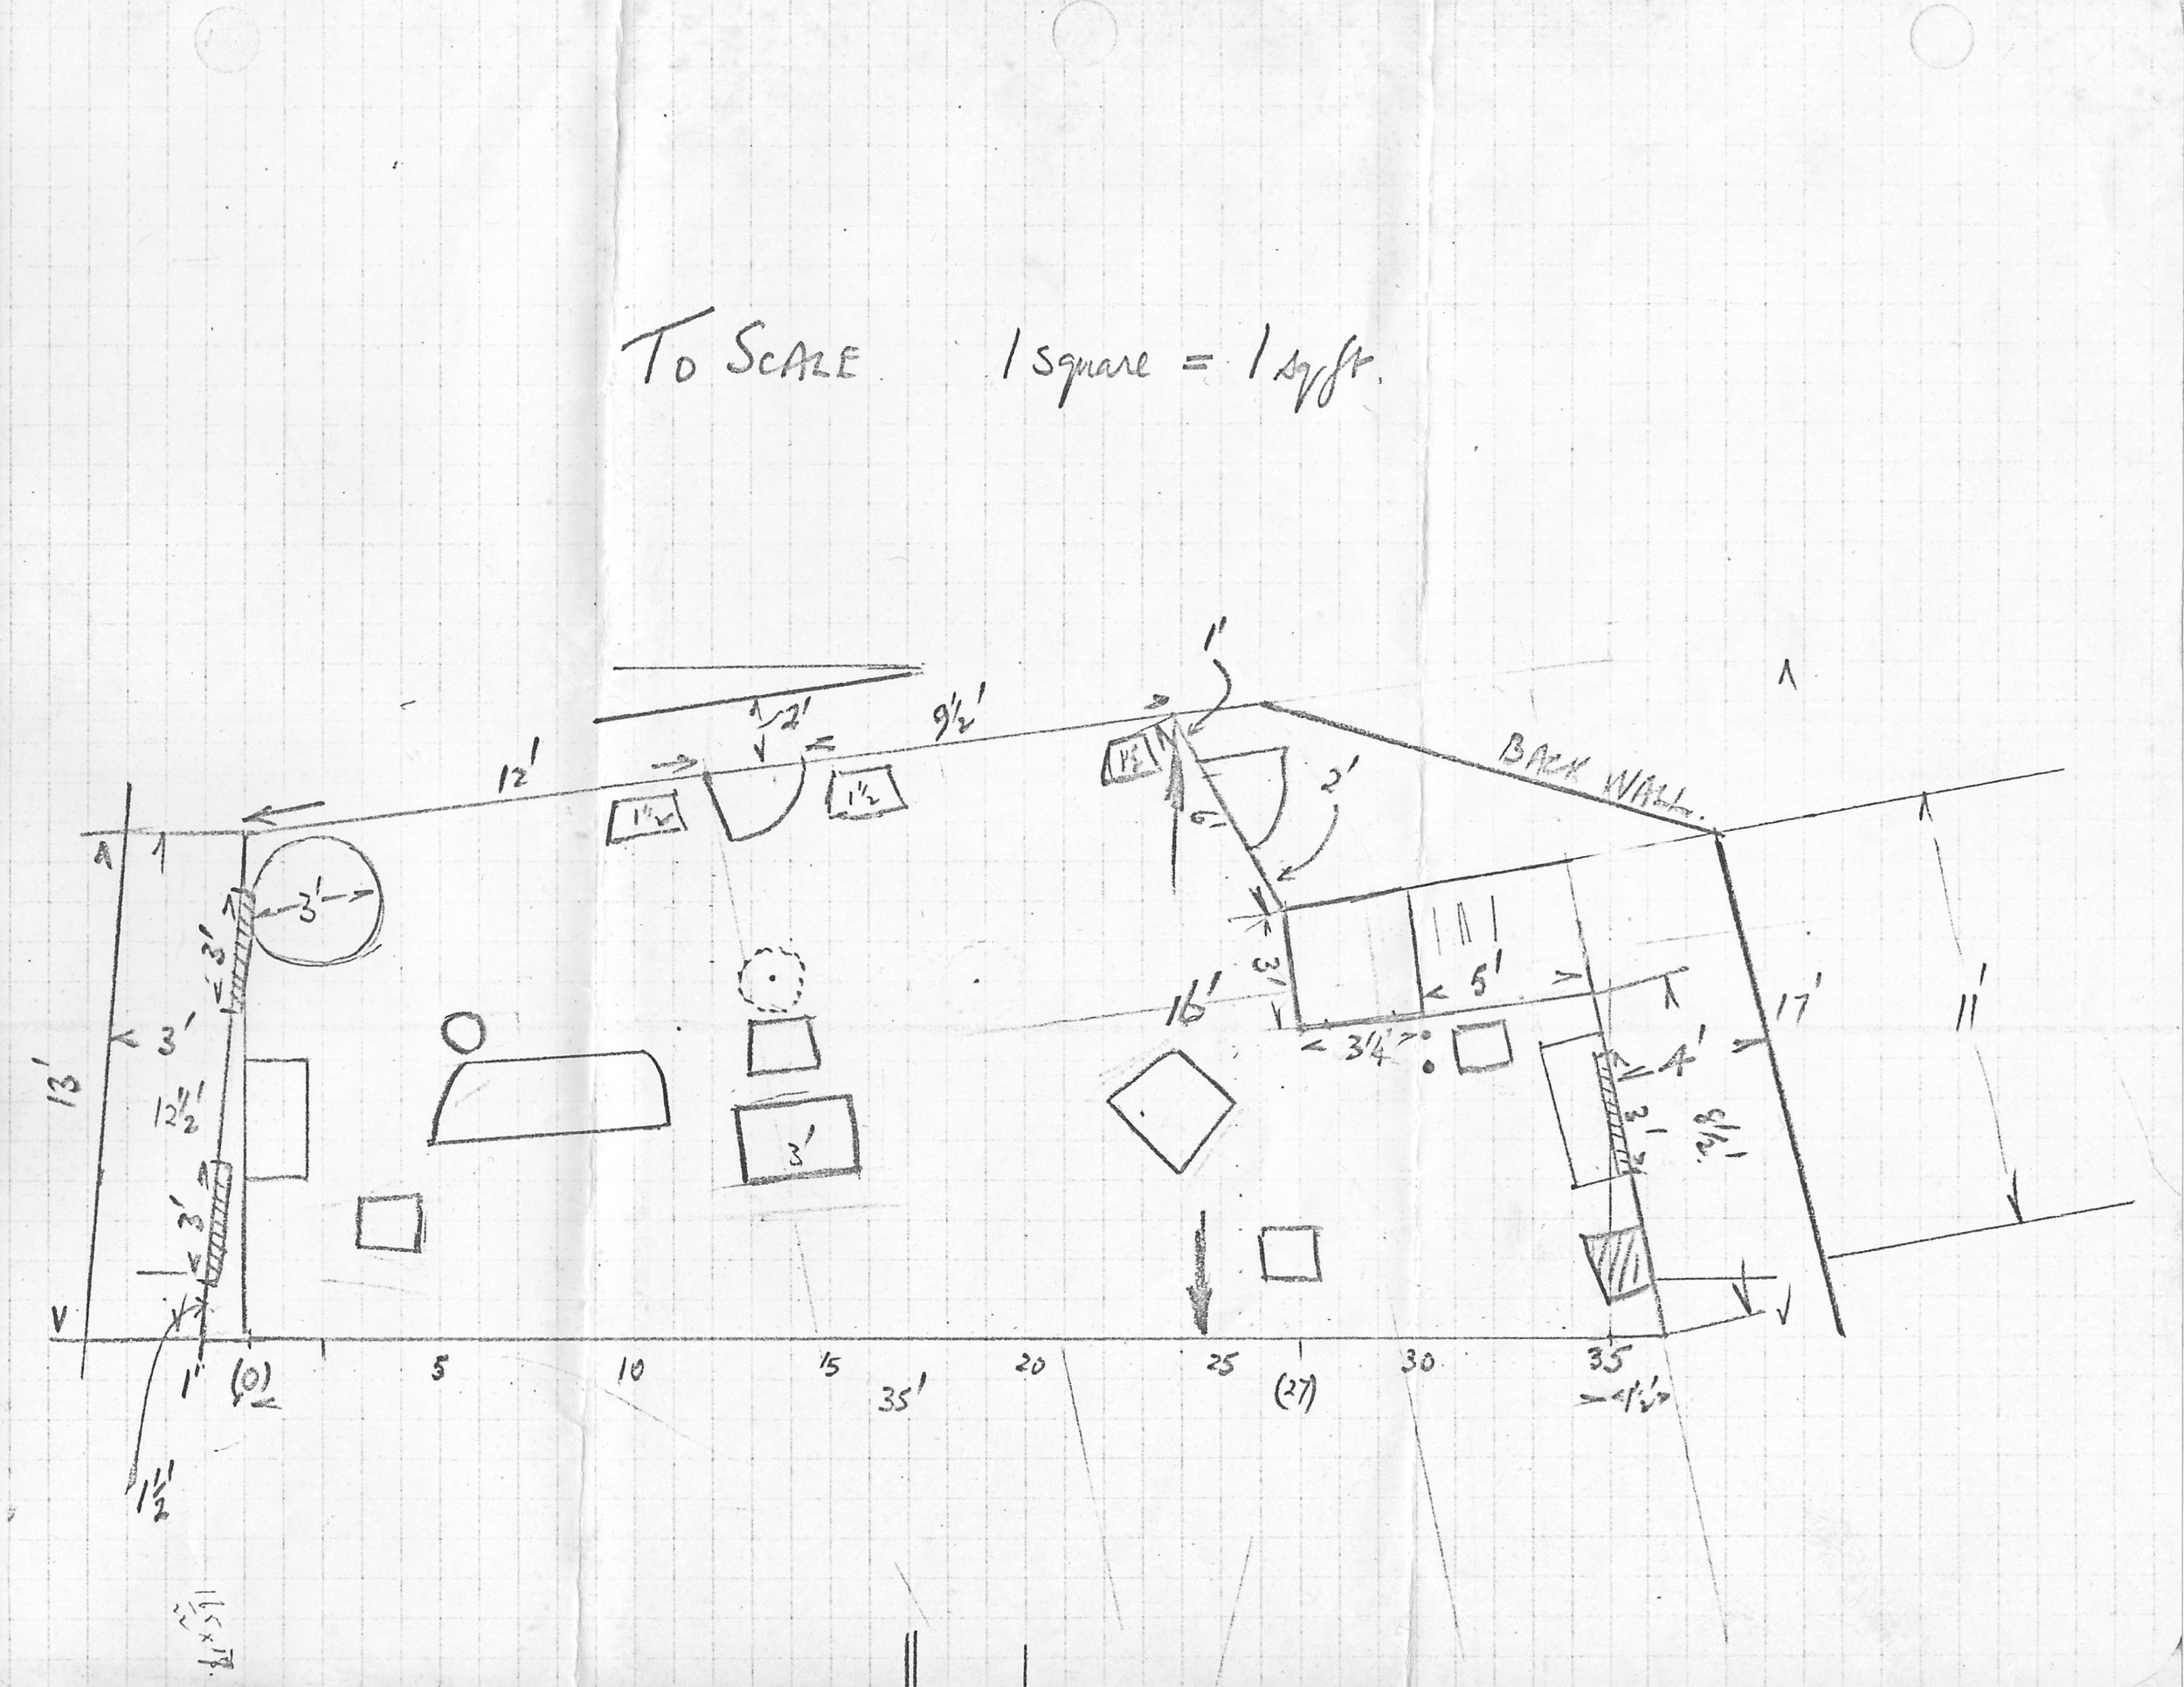 The set plans for our production of Janus. That square marked 3' by 3 1/4 is the dumbwaiter where as Denny I made most of my entrances and exits.